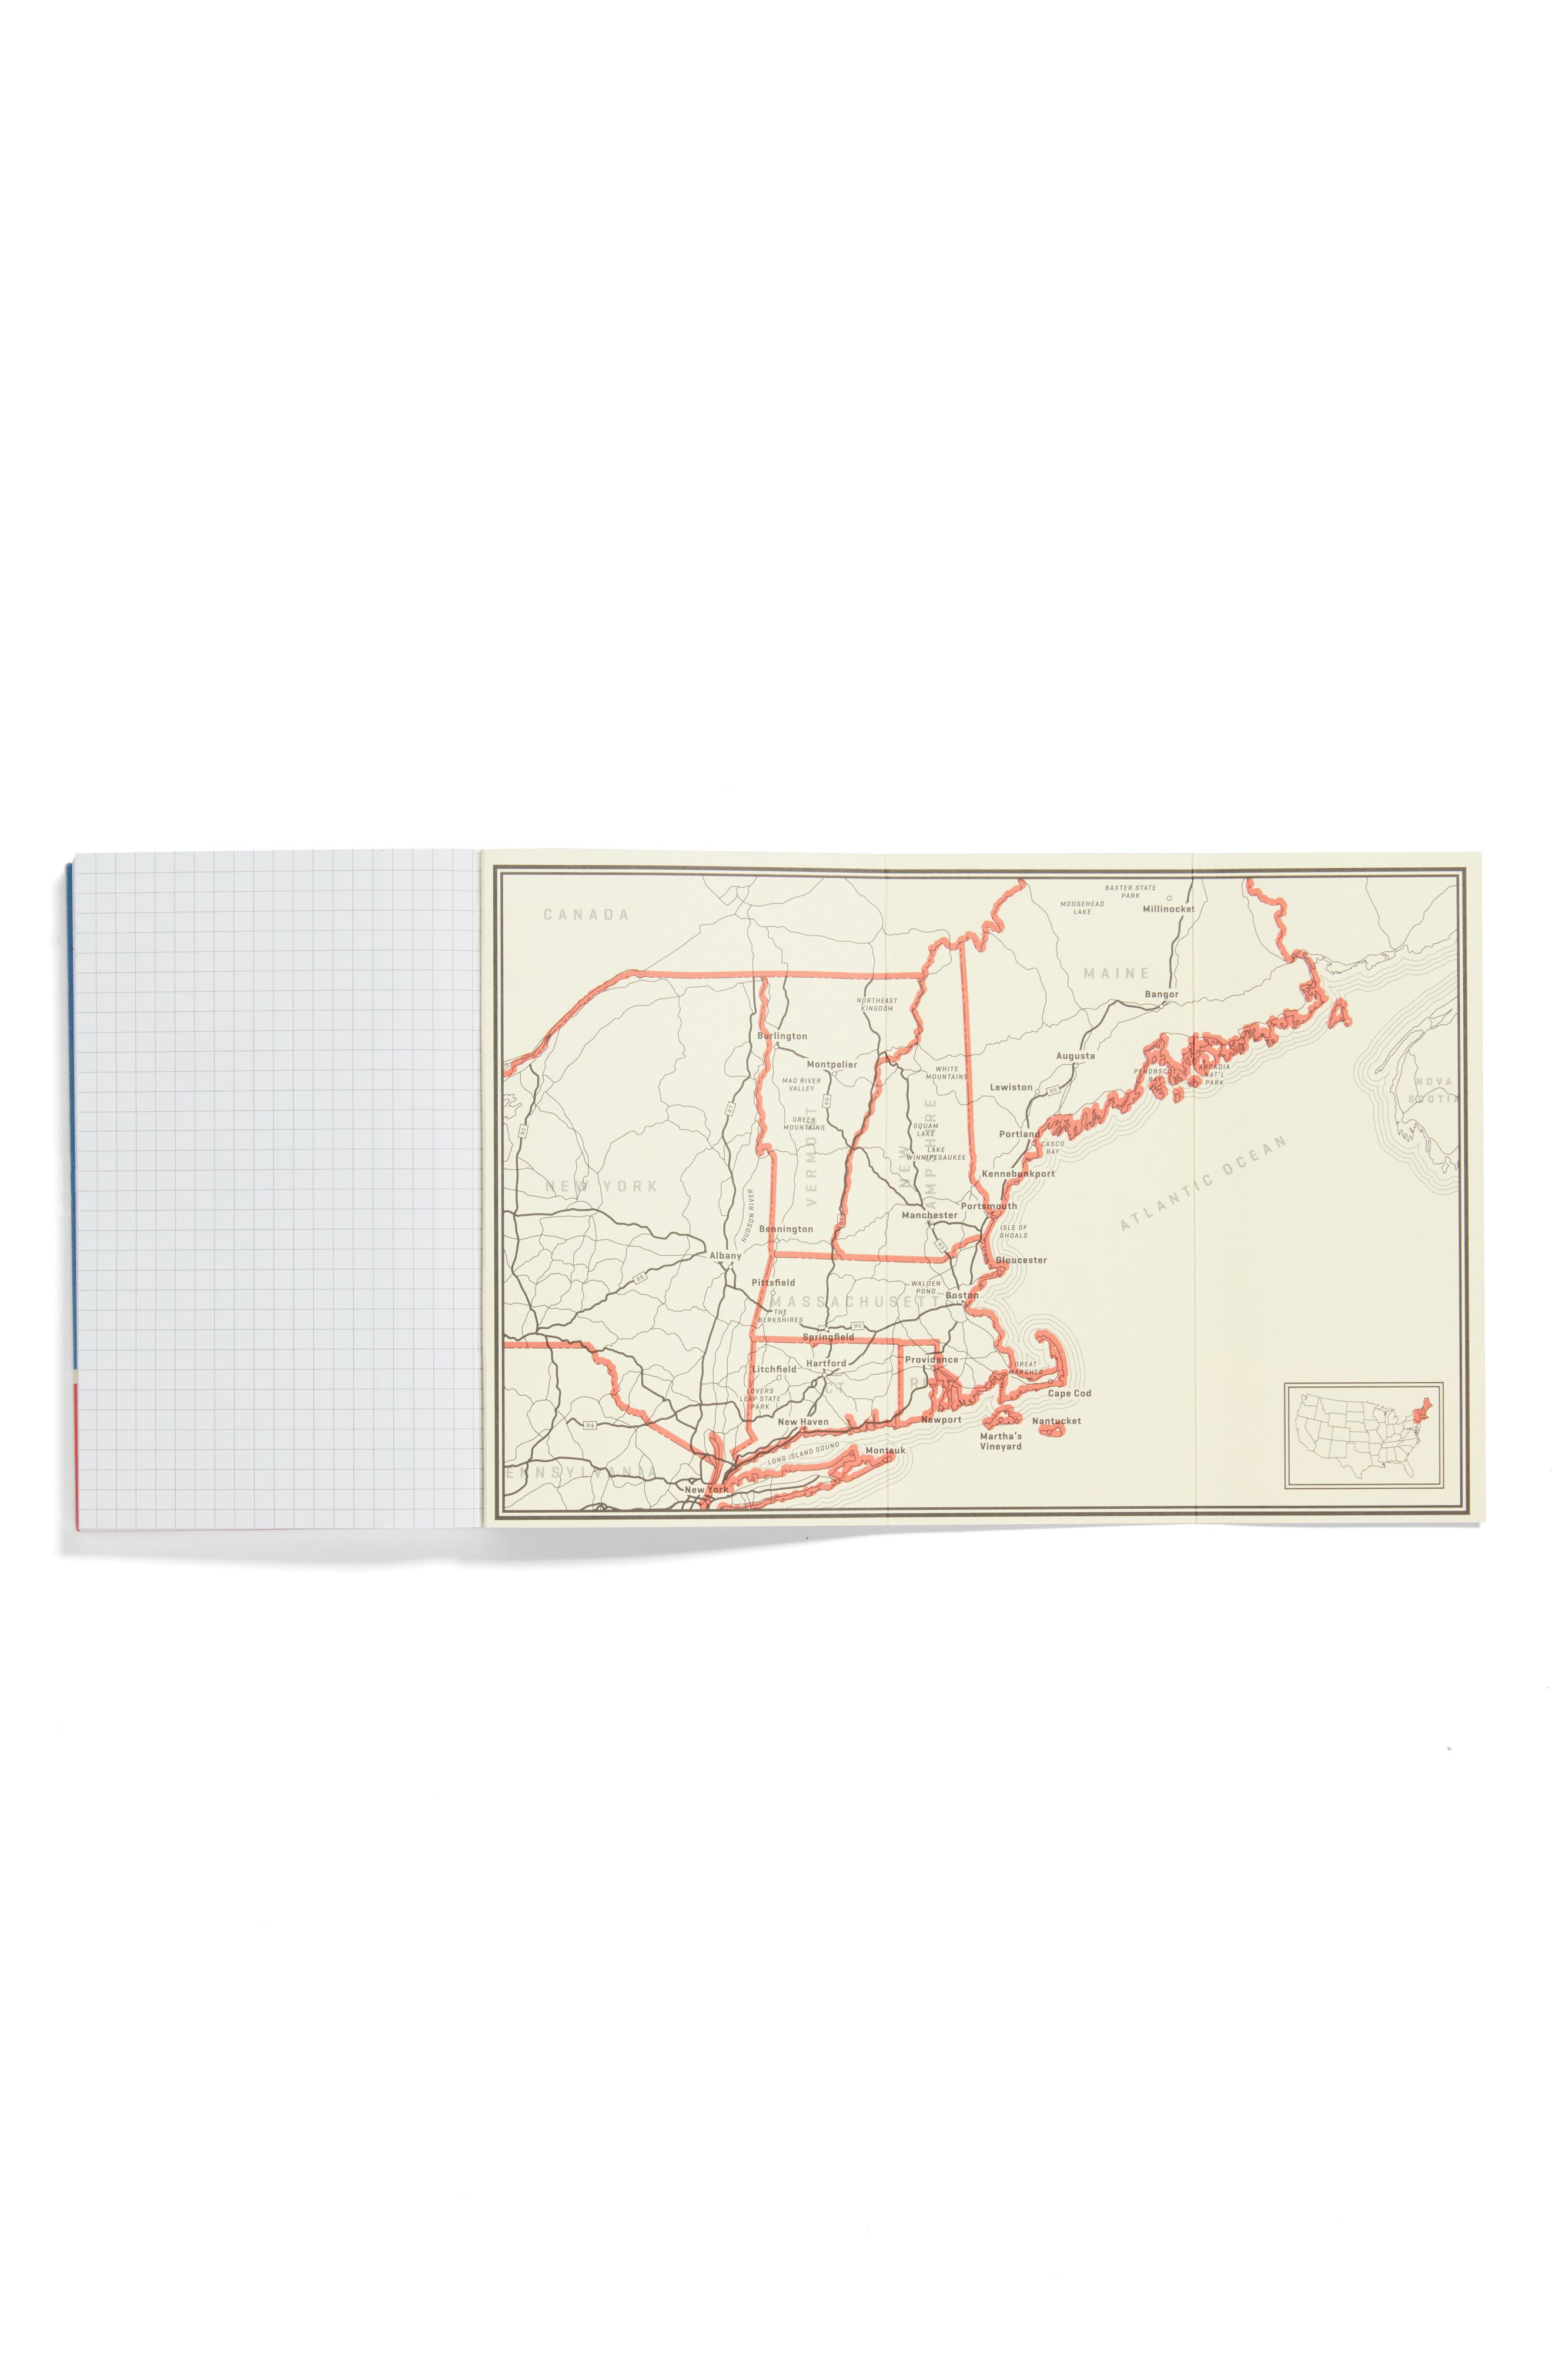 New England Road Trip Guide Book,                             Alternate thumbnail 3, color,                             NEW ENGLAND